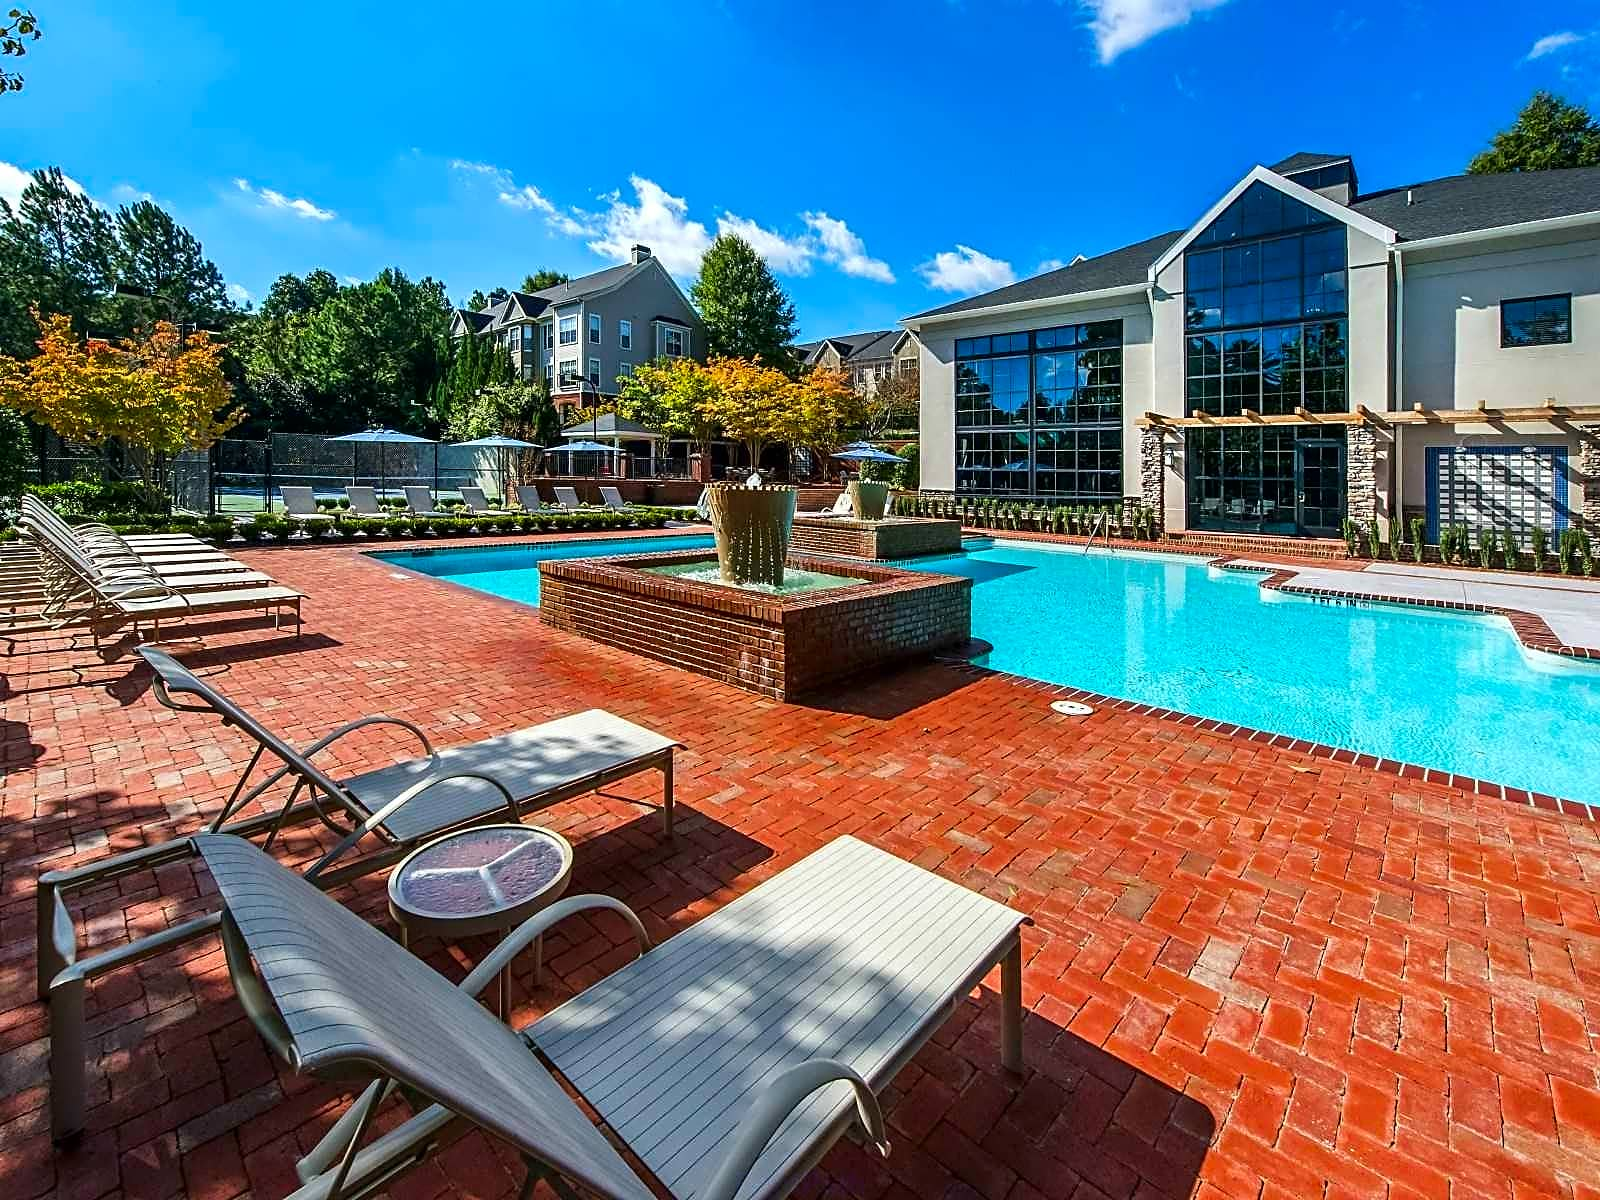 The London Luxury Apartment Homes for rent in Dunwoody